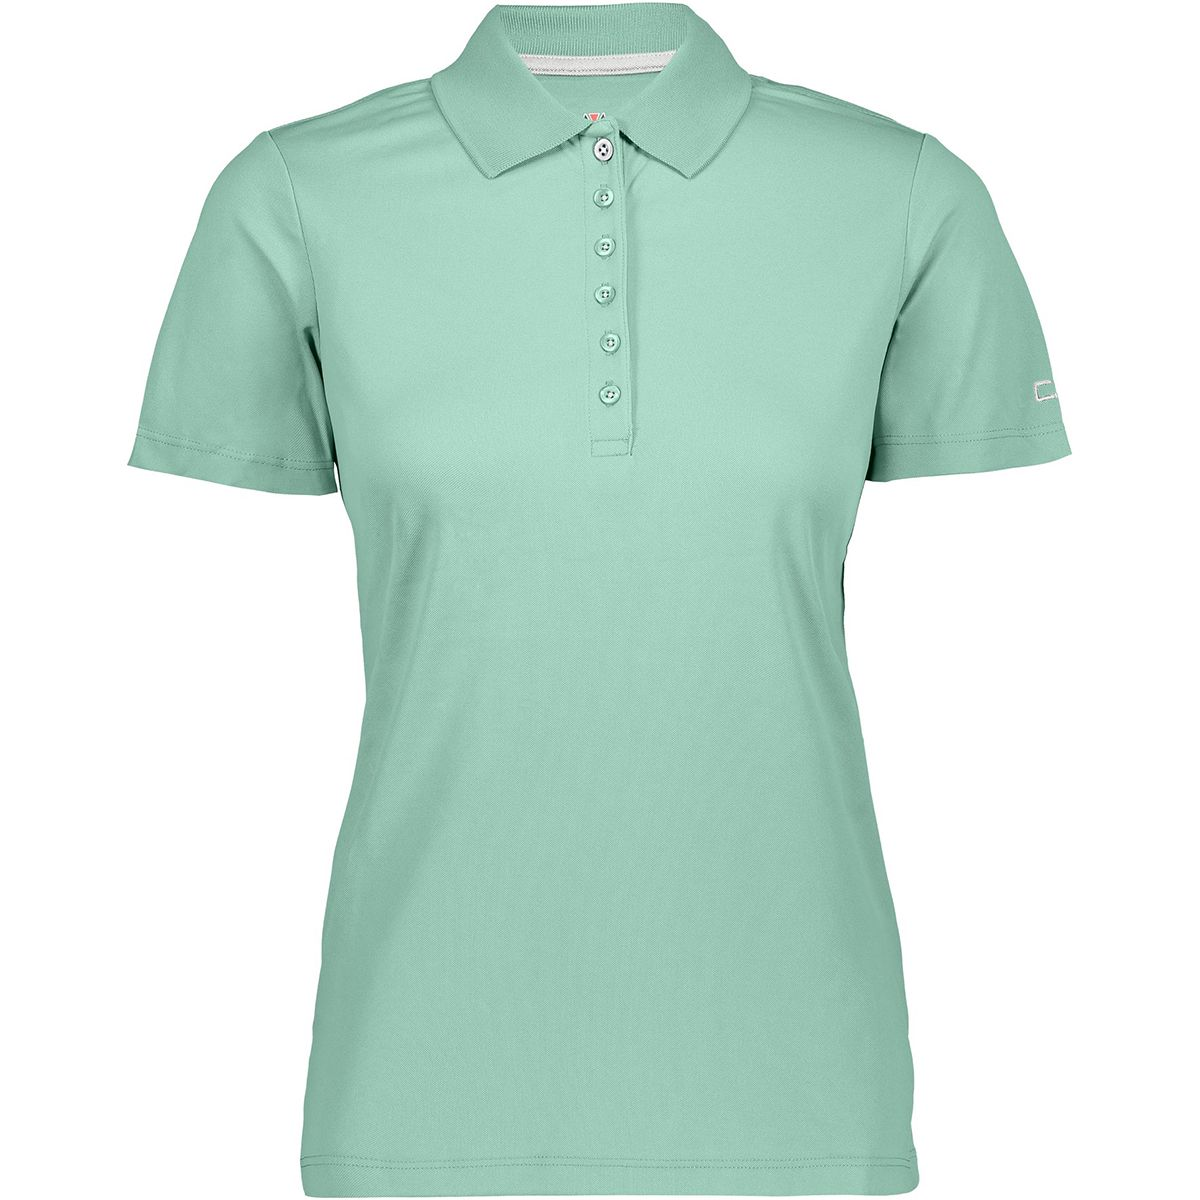 CMP Damen Polo T-Shirt (Größe XL, Türkis) | T-Shirts Funktion > Damen